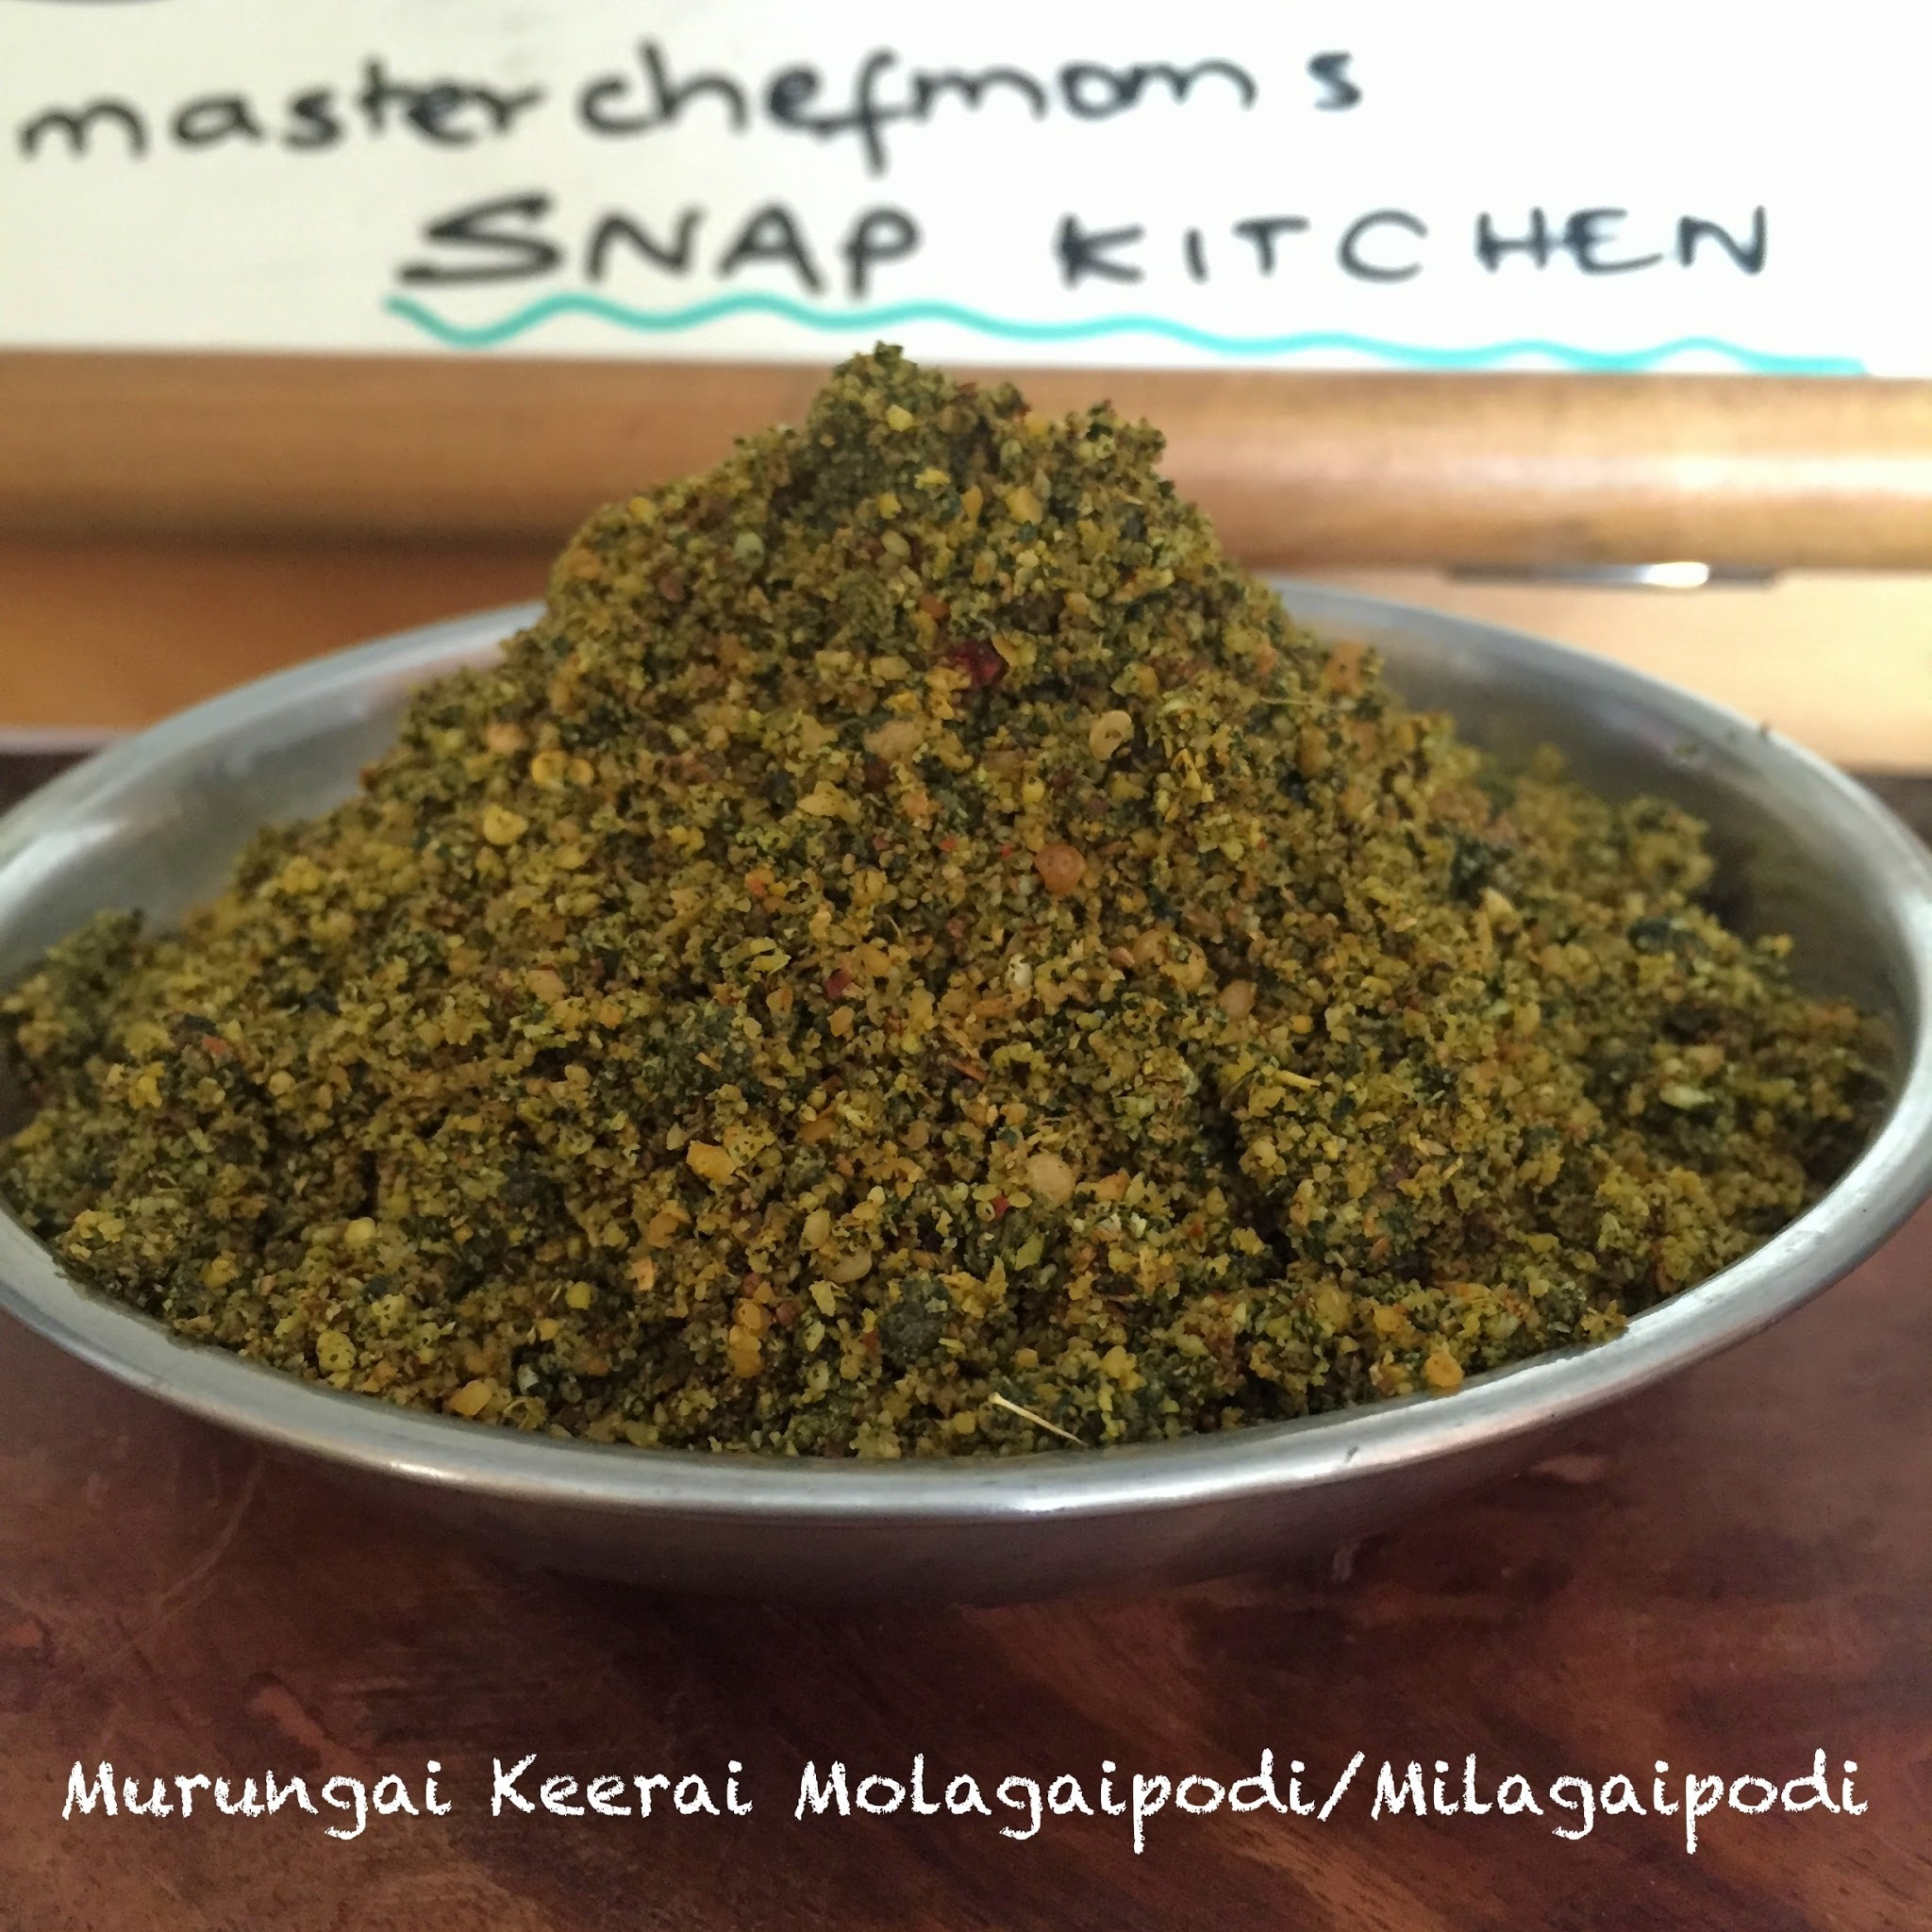 Murungai Keerai Milagaipodi | Moringa Leaves Milagaipodi| Murungai Molagaipodi | How to make Murungai Keerai Milagaipodi from scratch | Gluten Free and Vegan Recipe | Murungai Keerai Recipes | Masterchefmom Snap Kitchen Recipe